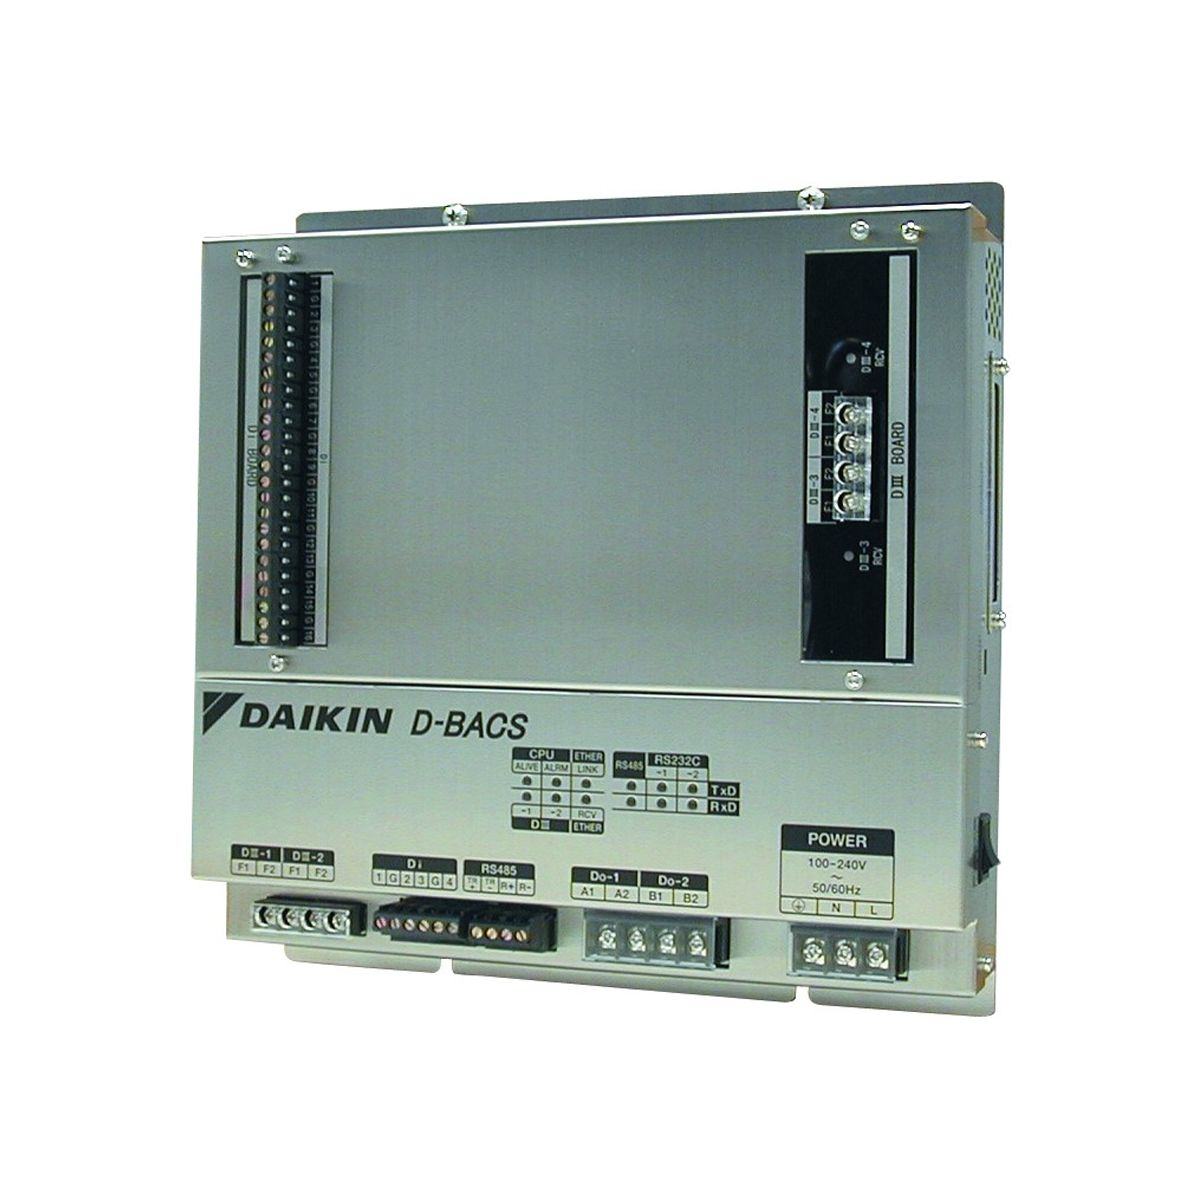 Daikin Air Conditioning Bms Bacnet Interface Dms502a51